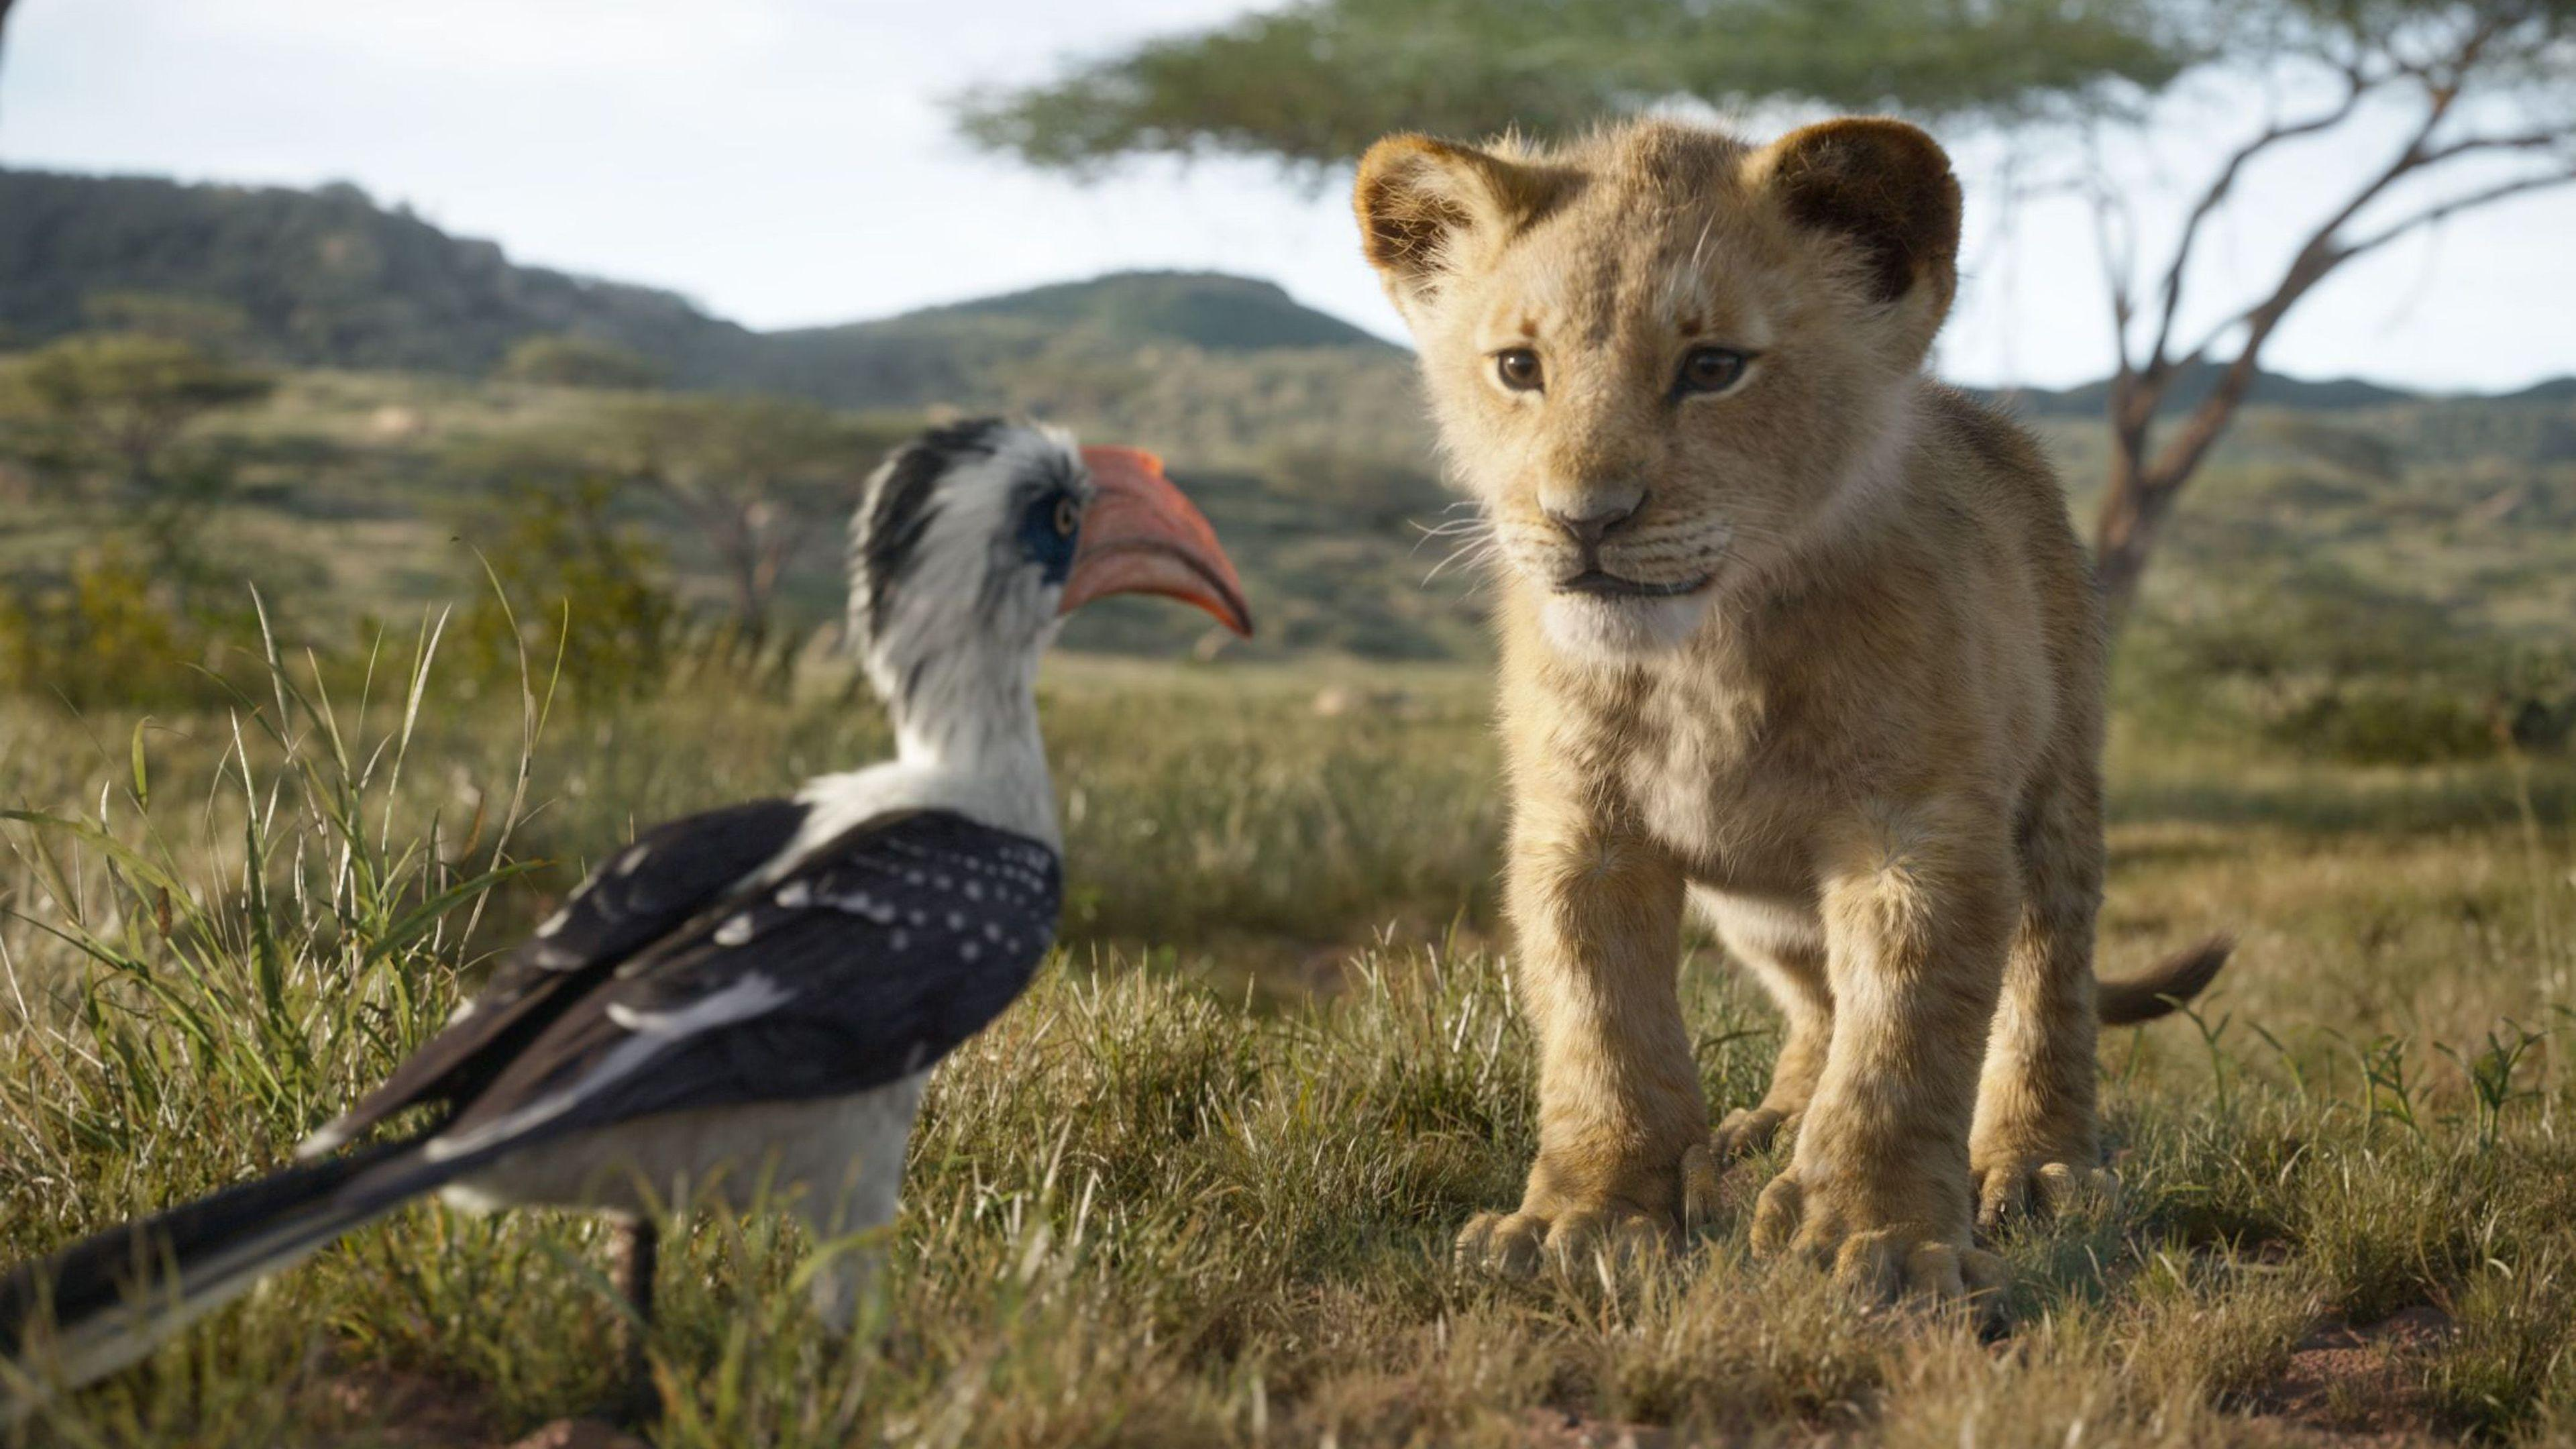 Wallpapers 4k The Lion King Simba 4k 2019 movies wallpapers, 4k